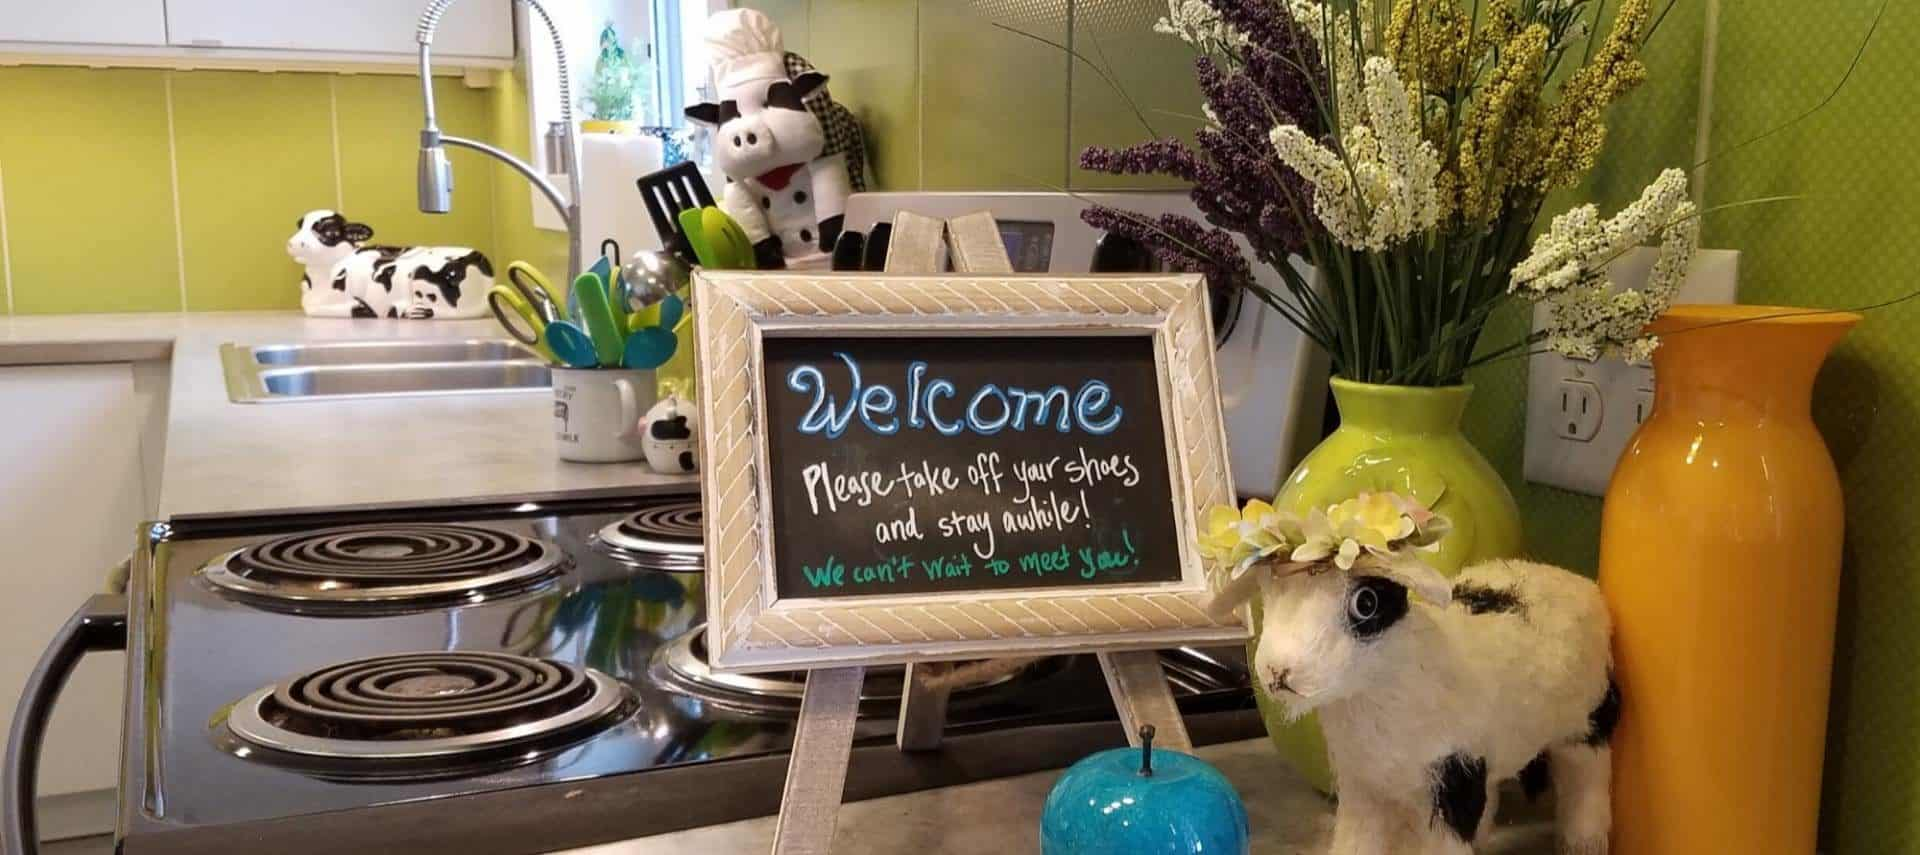 Close up view of countertop in a kitchen with a small Welcome sign, blue glass apple, orange and green vases, and stuffed black and white cow